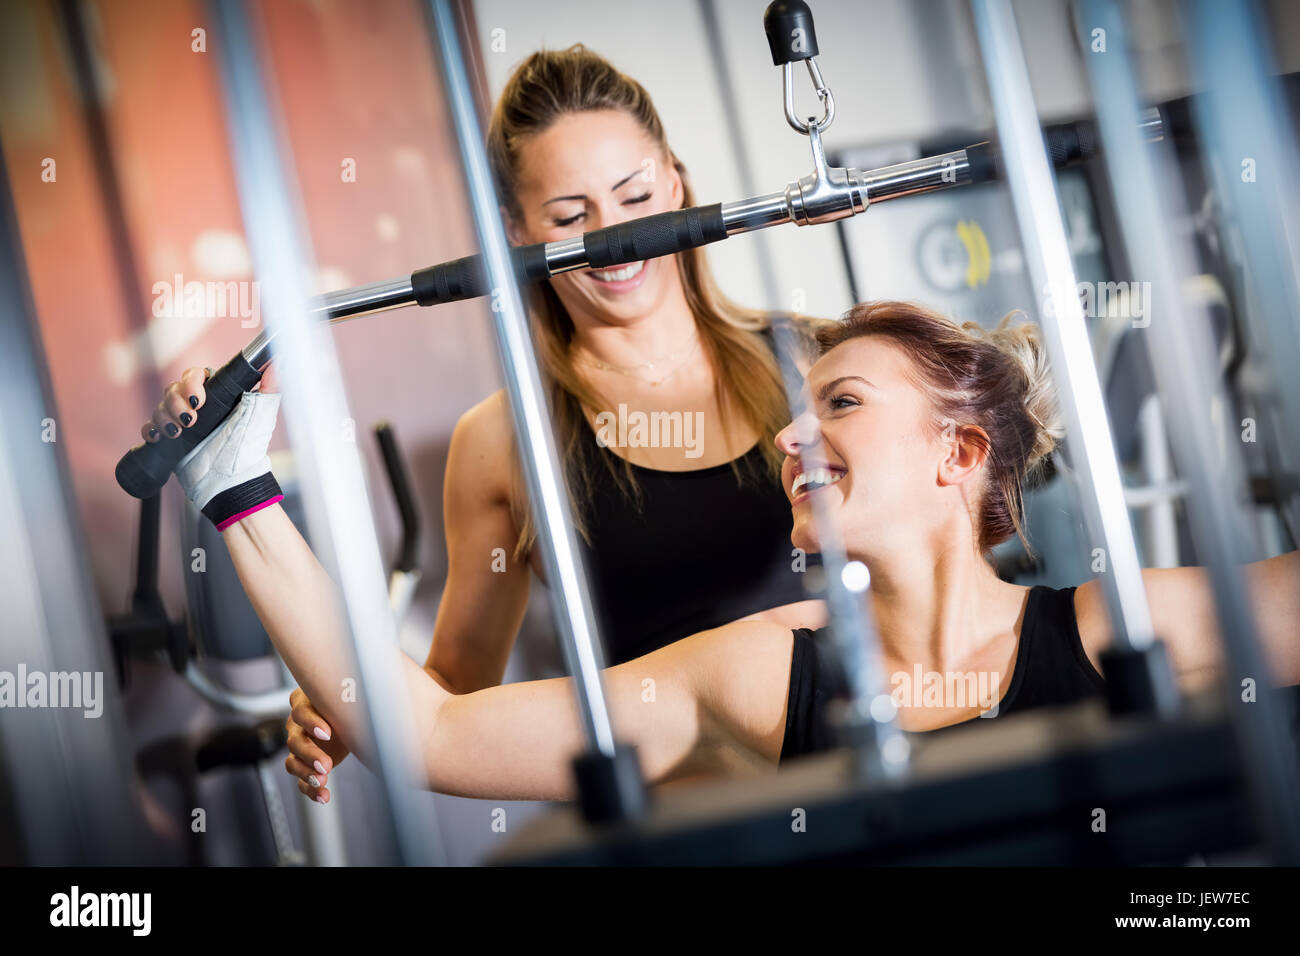 Personal trainer helps with gym equipment workout. Two attractive women training, building strength. Sport concept. - Stock Image